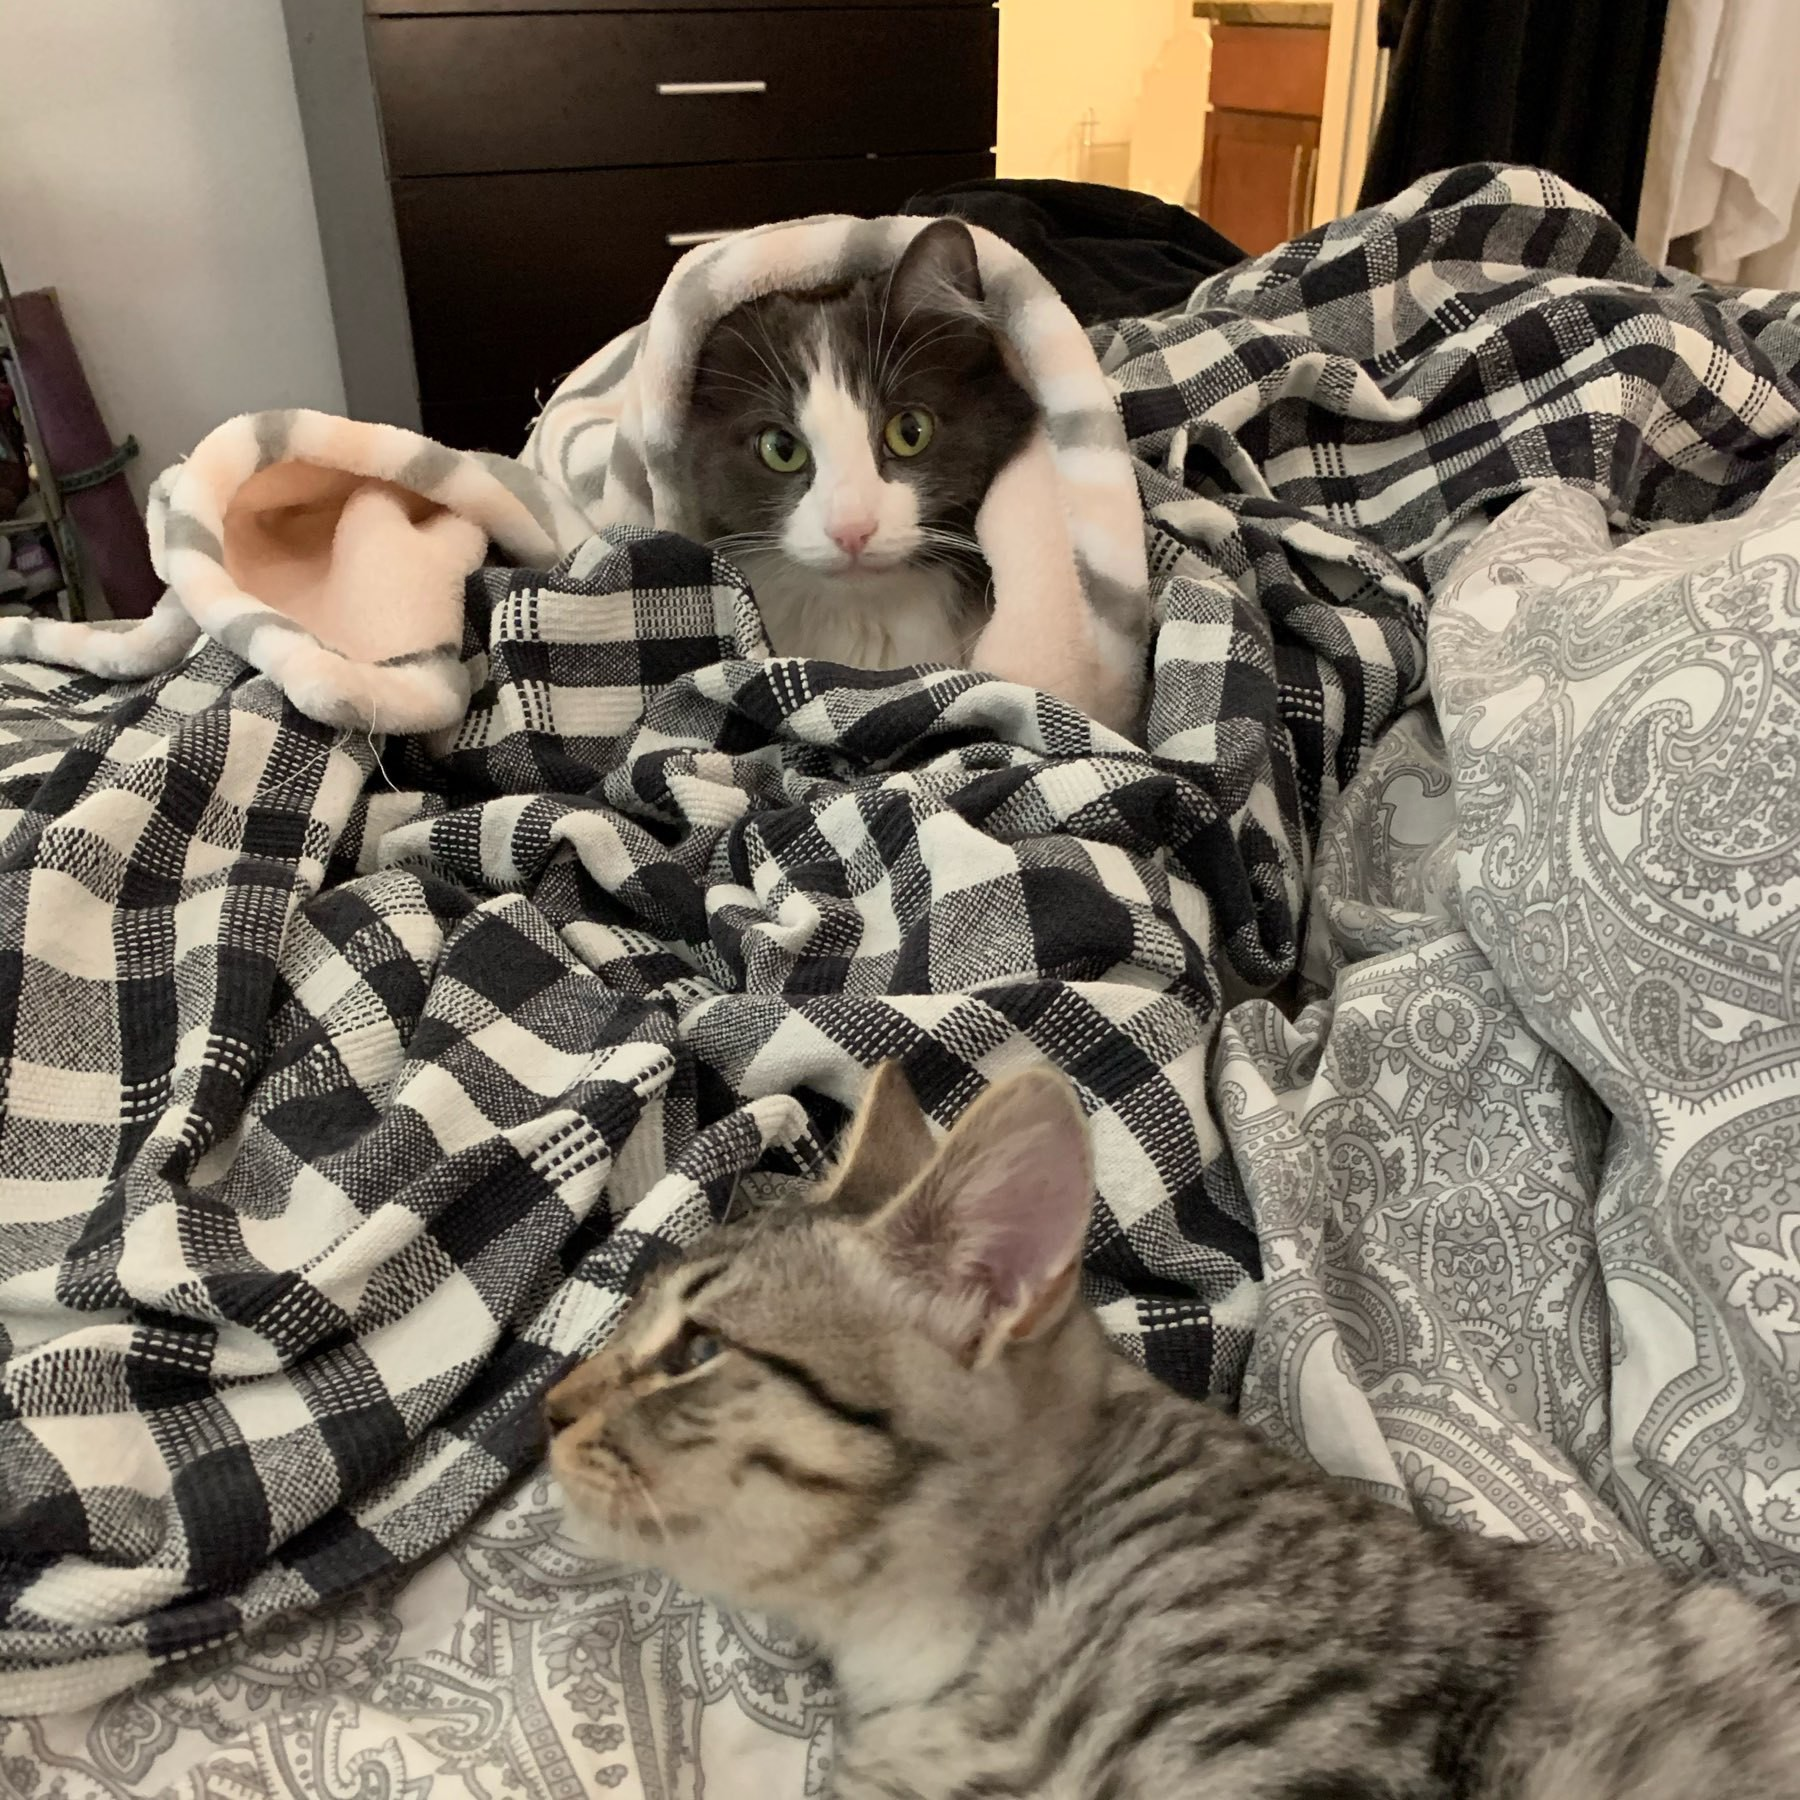 A grey and white cat under blankets in background glares at grey and black tabby grooming in foreground